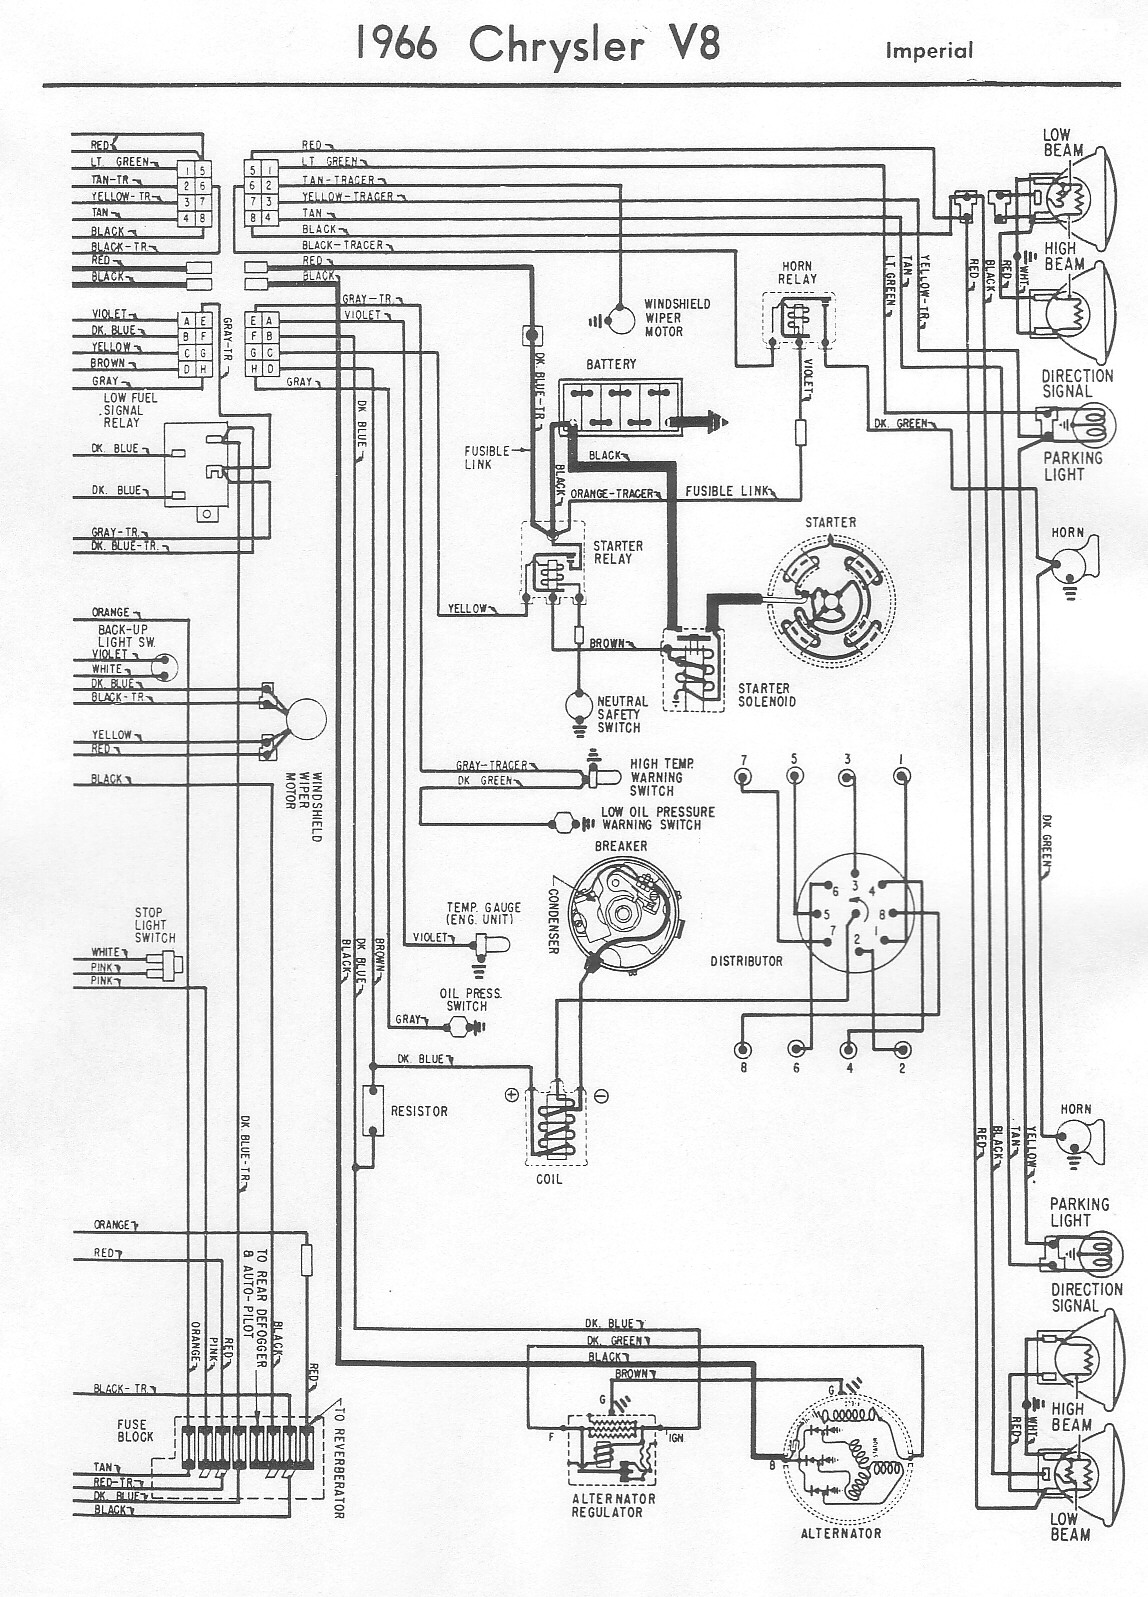 medium resolution of 1968 chrysler wiring diagram simple wiring diagram schema1968 chrysler 300 wiring diagram wiring diagrams 1968 gto